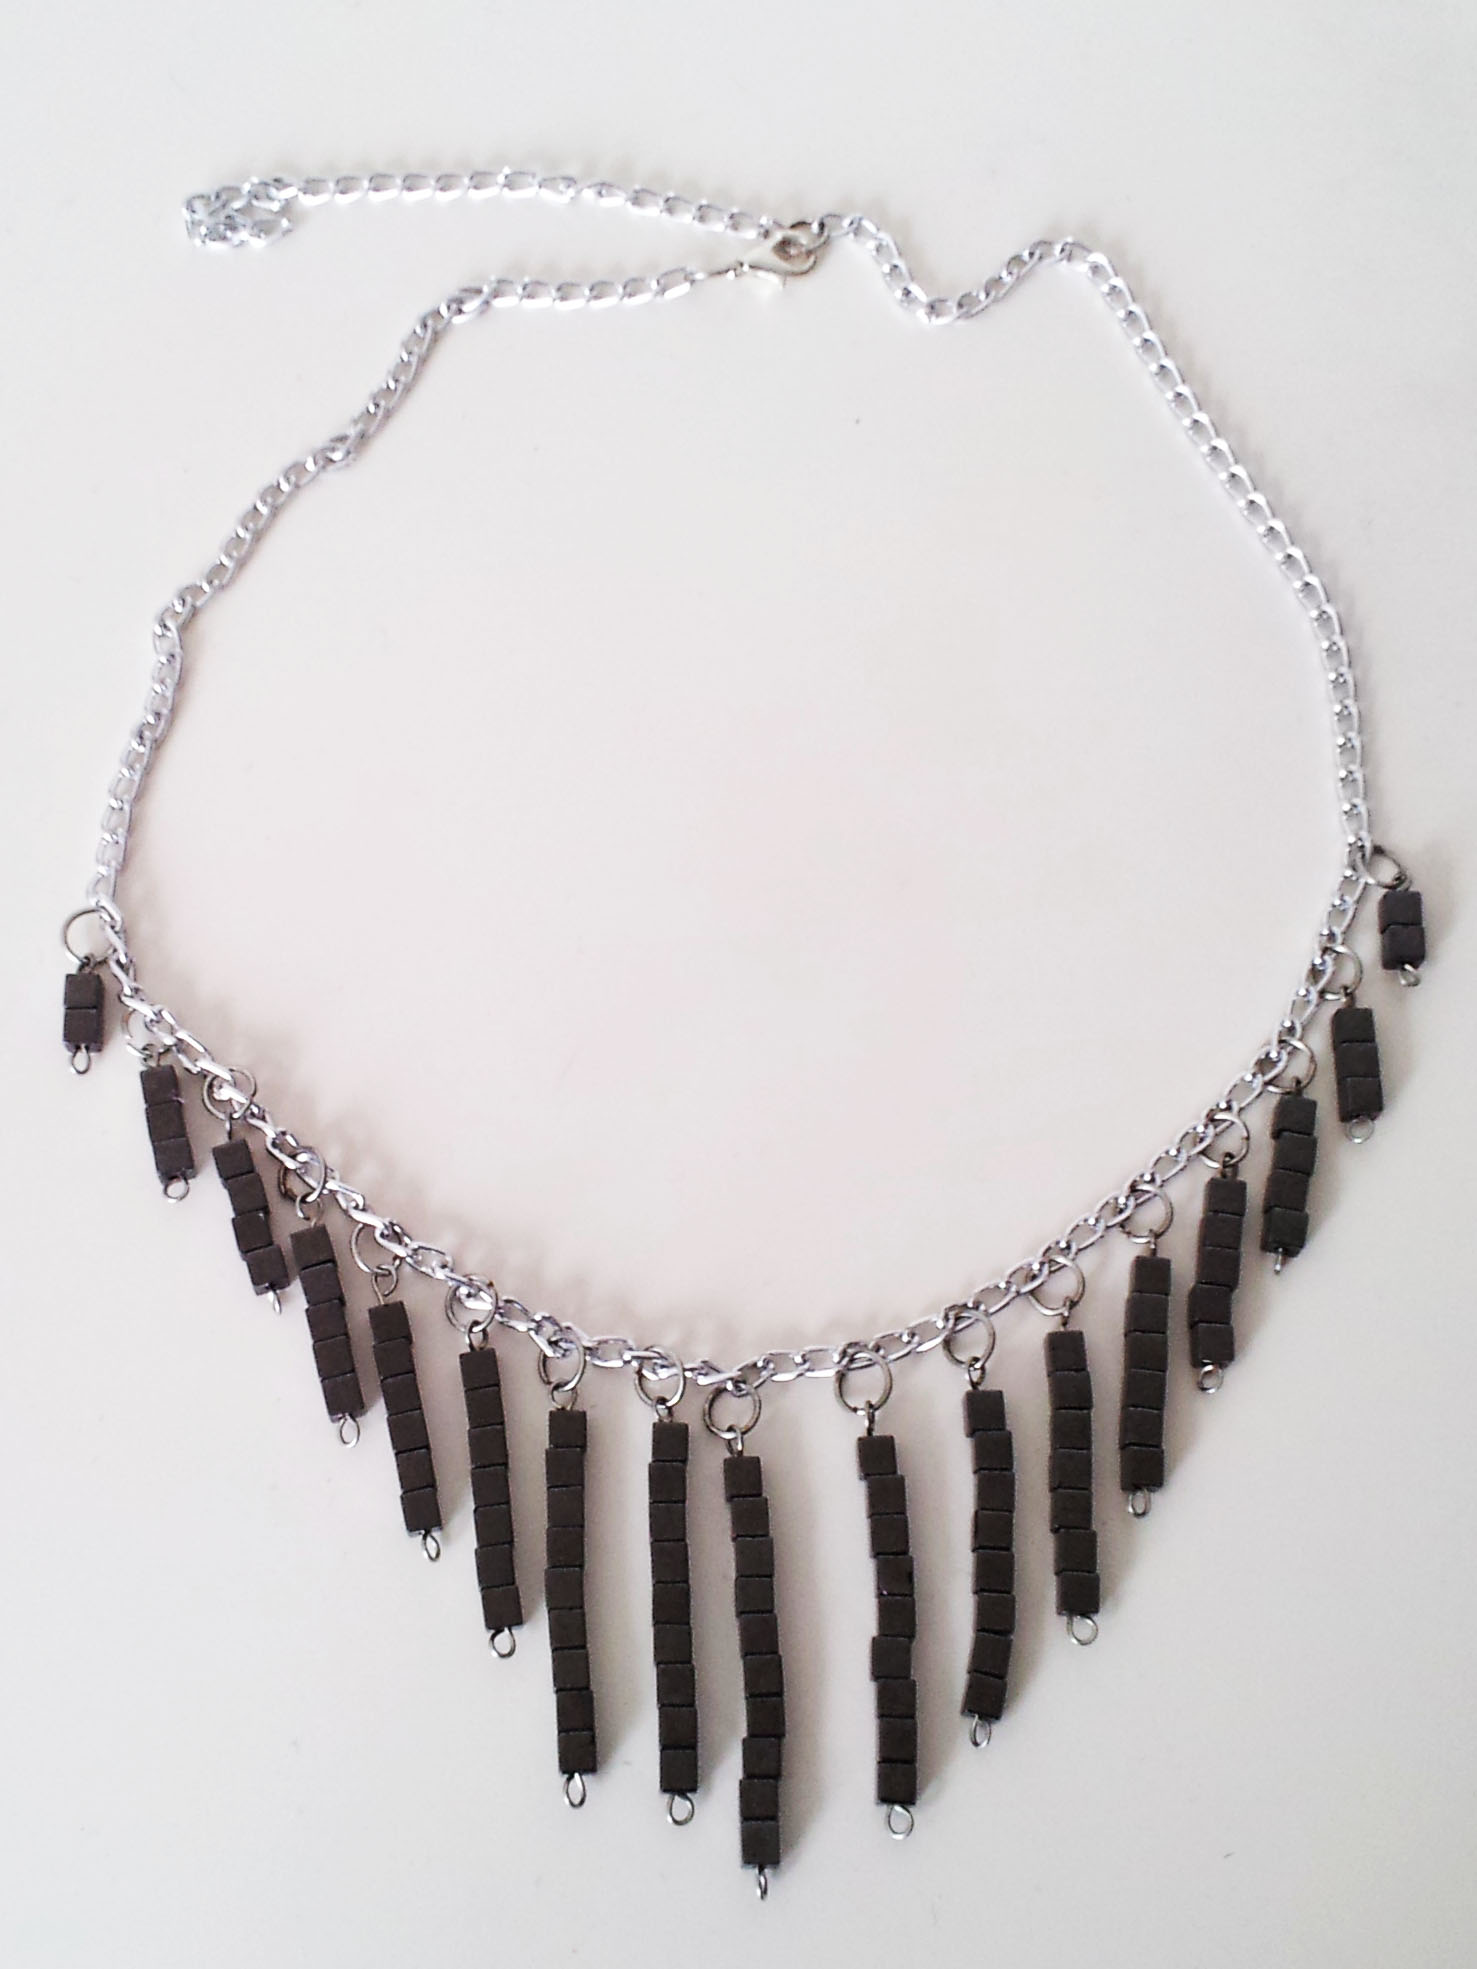 Final DIY Chandelier Necklace